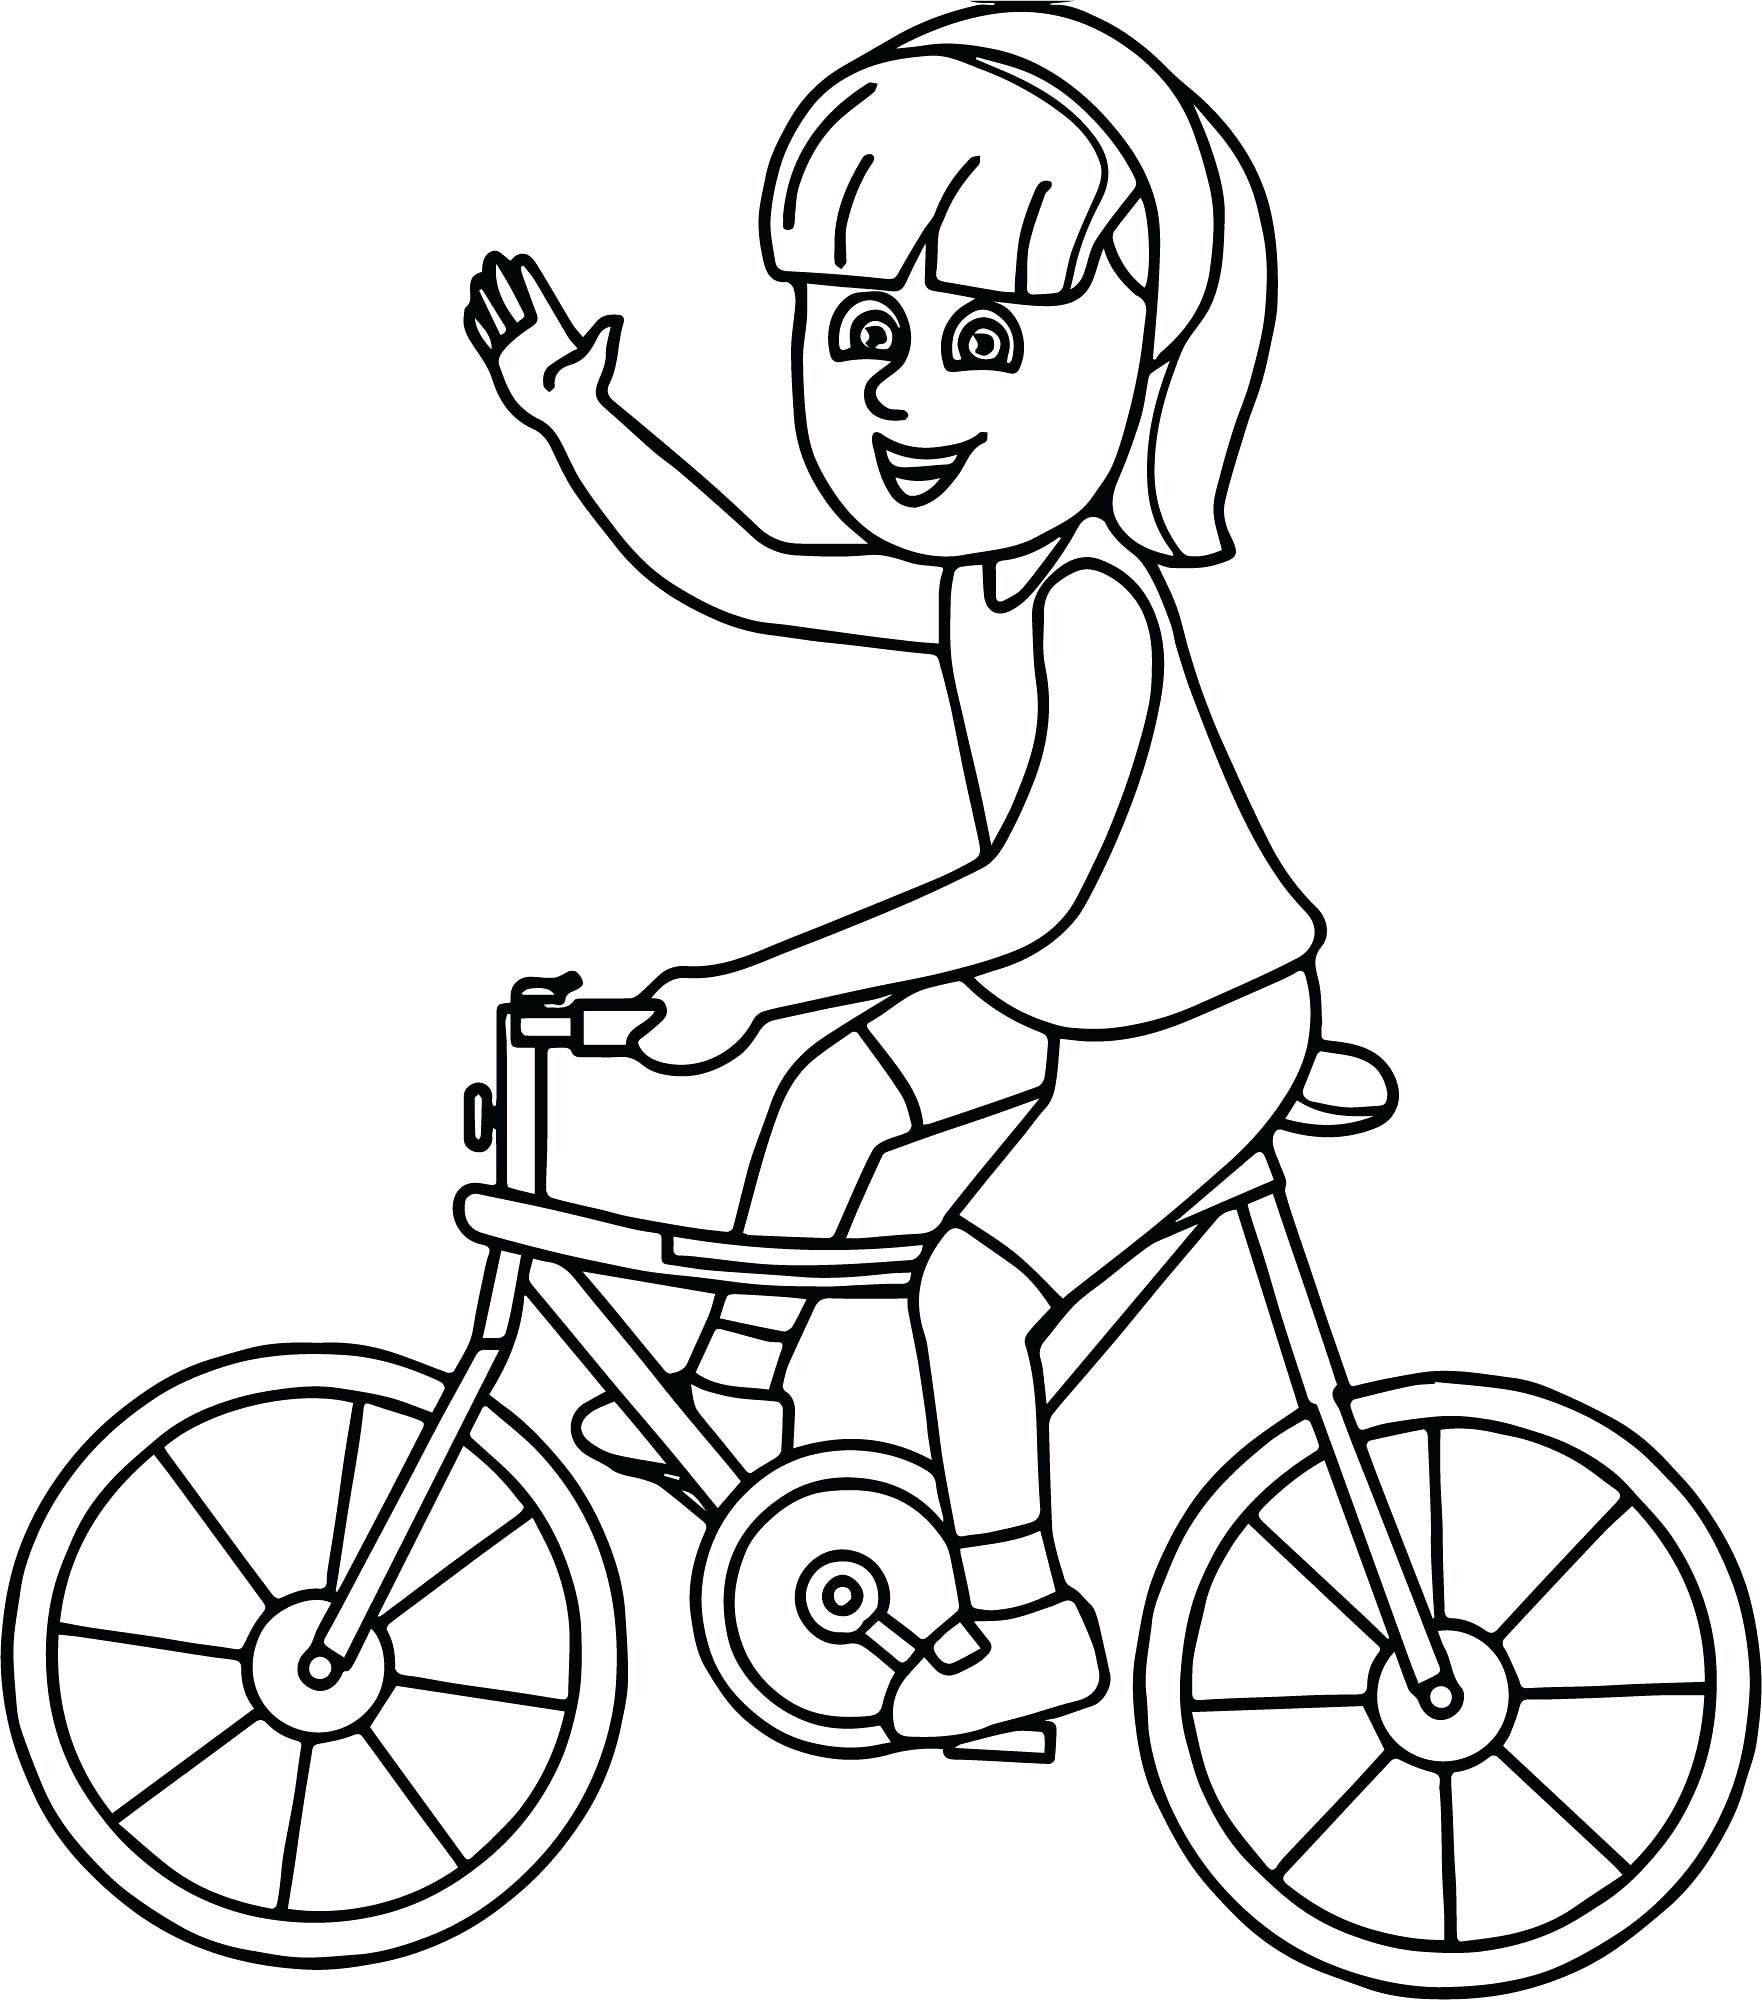 Motorcycle Coloring Pages 20 Luxury Dirt Bike Coloring Pages Of Motorcycle Coloring Page 15 Albanysinsanity Com In 2020 Coloring Pages Cool Coloring Pages Coloring Pages For Girls